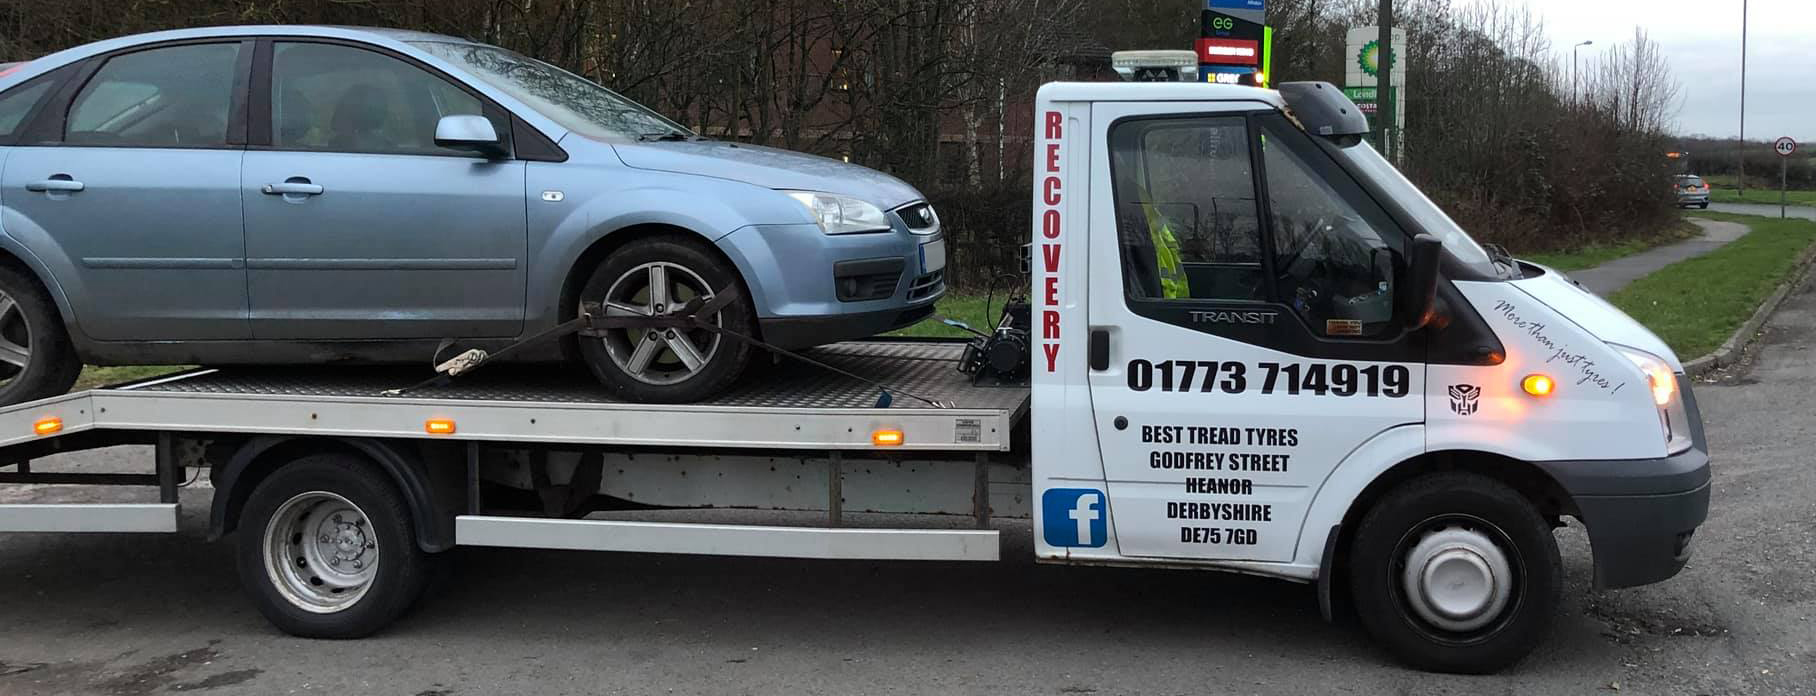 Best Tread Tyres recovery vehicle - Tyres Heanor